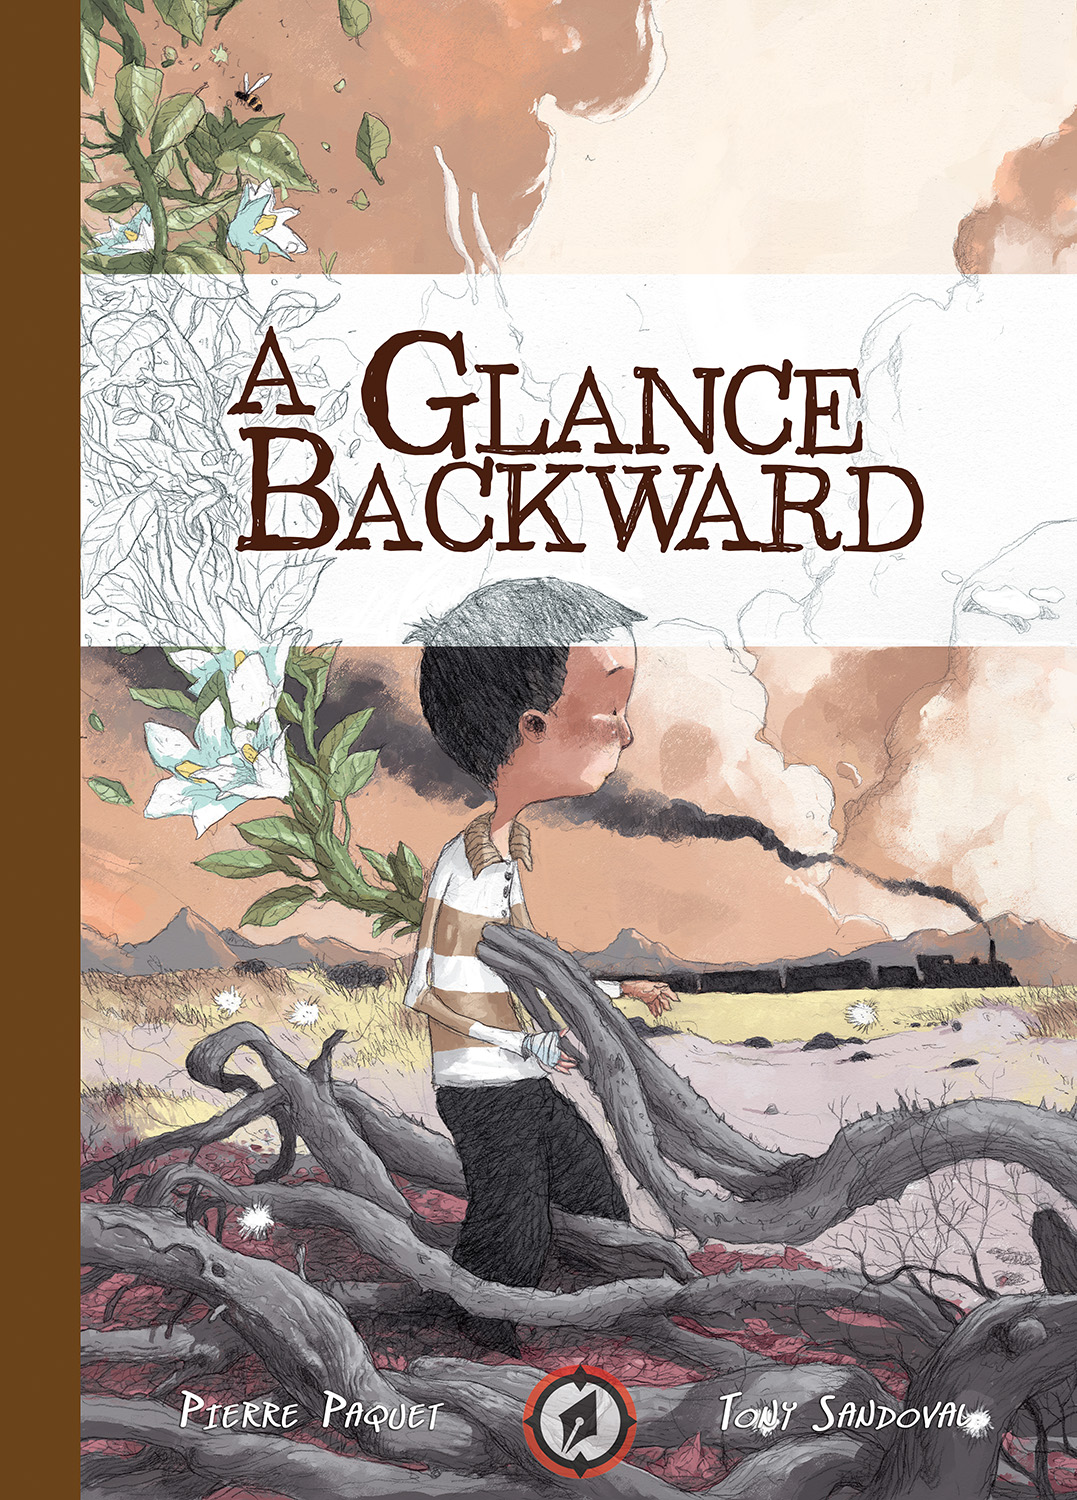 A Glance Backward Review: The Strange Journey of Life